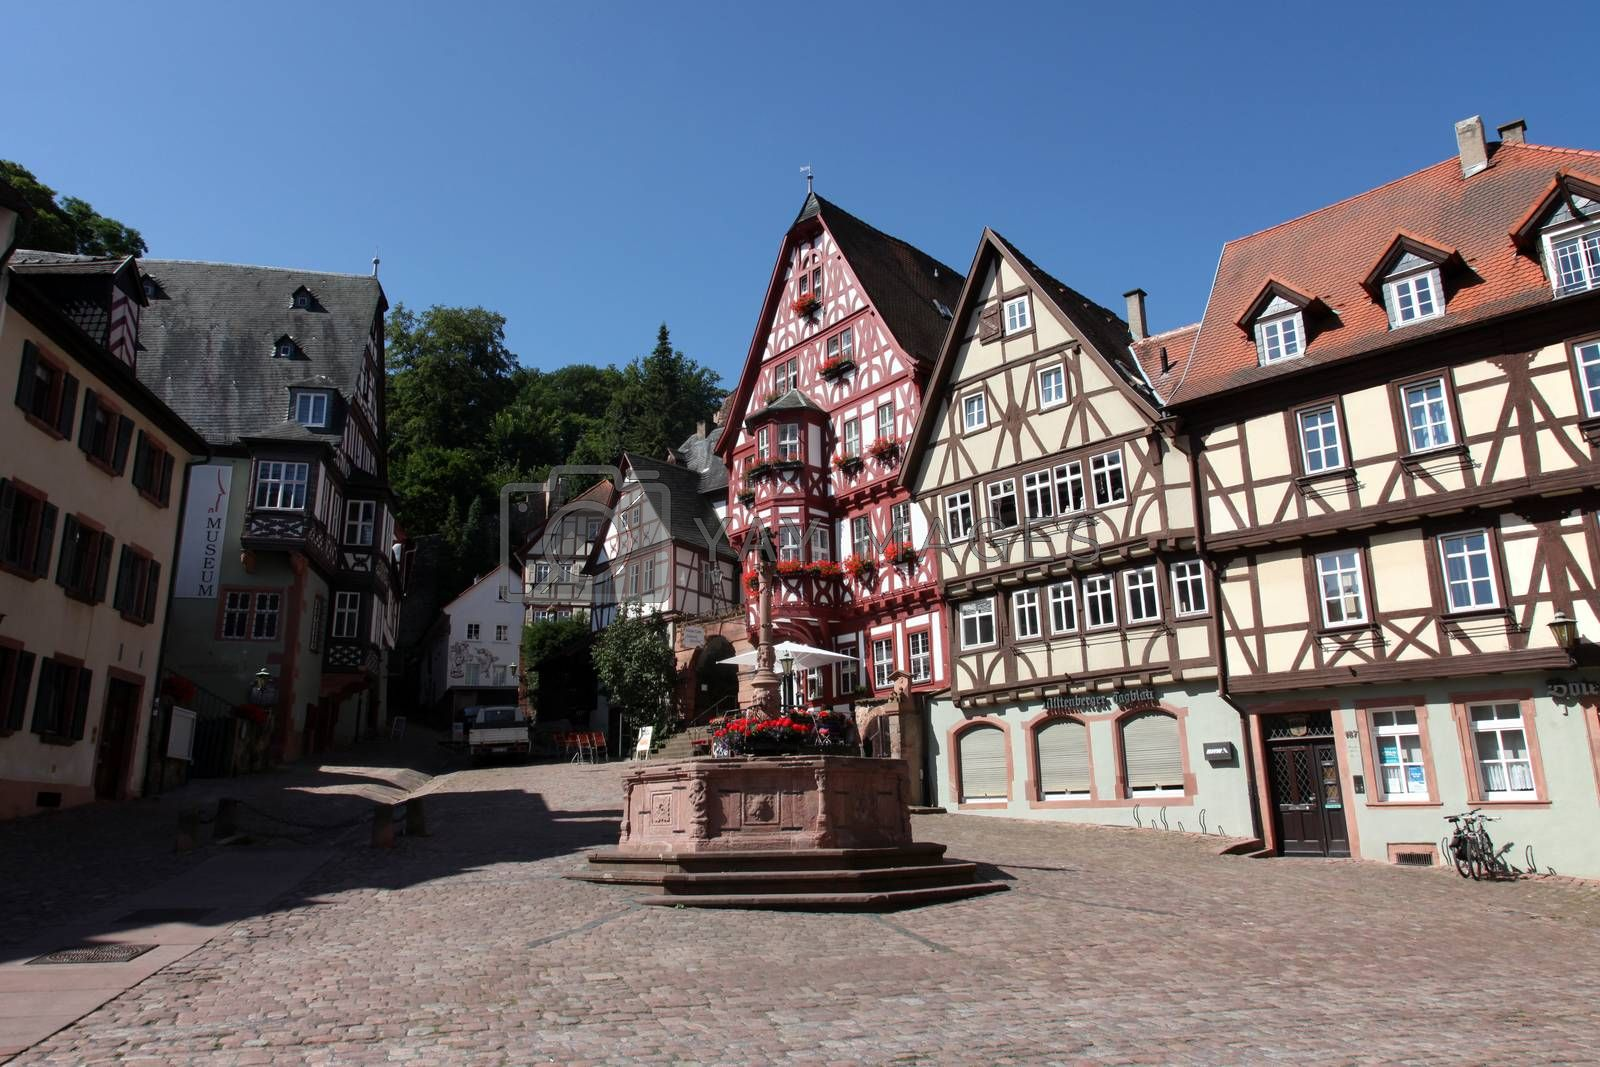 Half-timbered old houses in Miltenberg, Germany